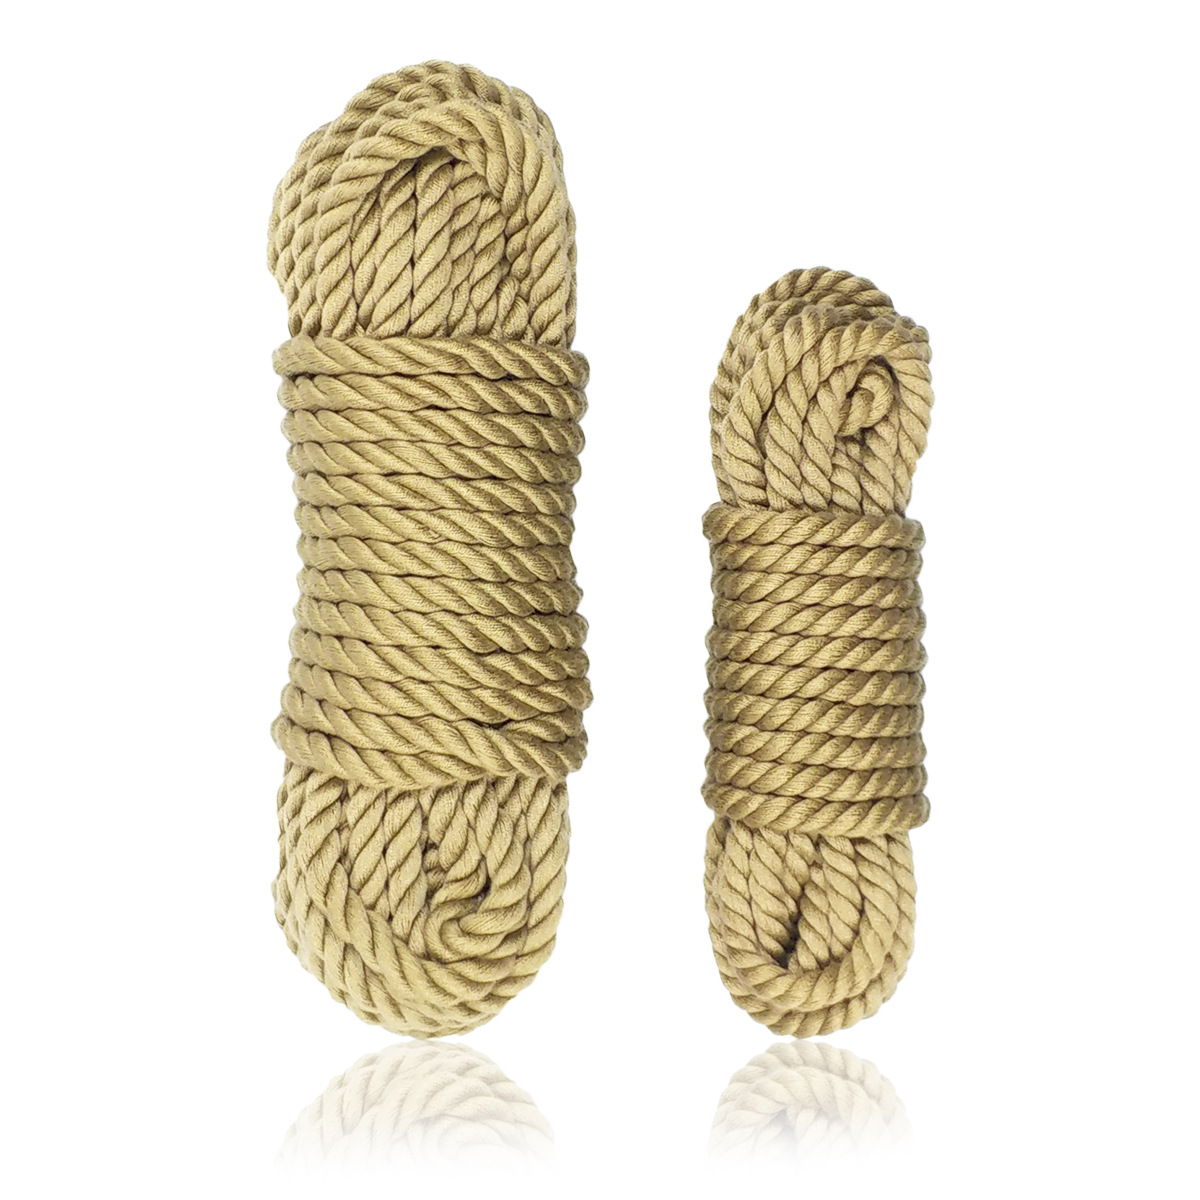 Soft Cotton Rope Bdsm Bondage Sex Toy Handcuffs Toys For Adults Shibari Restraints 5m 10m Rope Cord Binding Binder Restraint